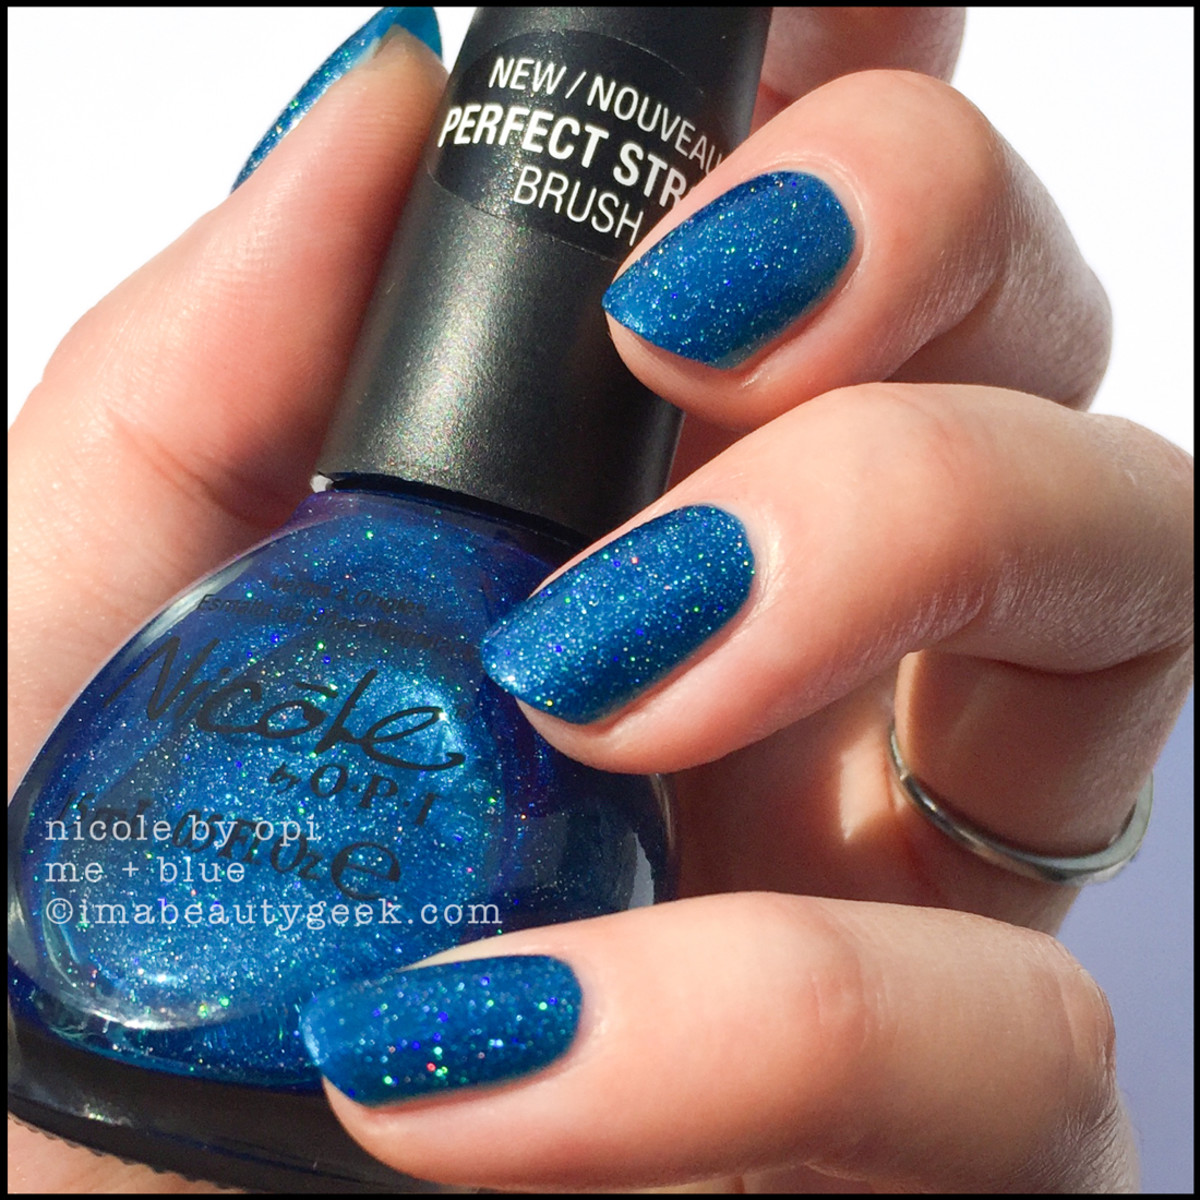 Nicole by OPI Me + Blue direct sun_Nicole by OPI Swatches